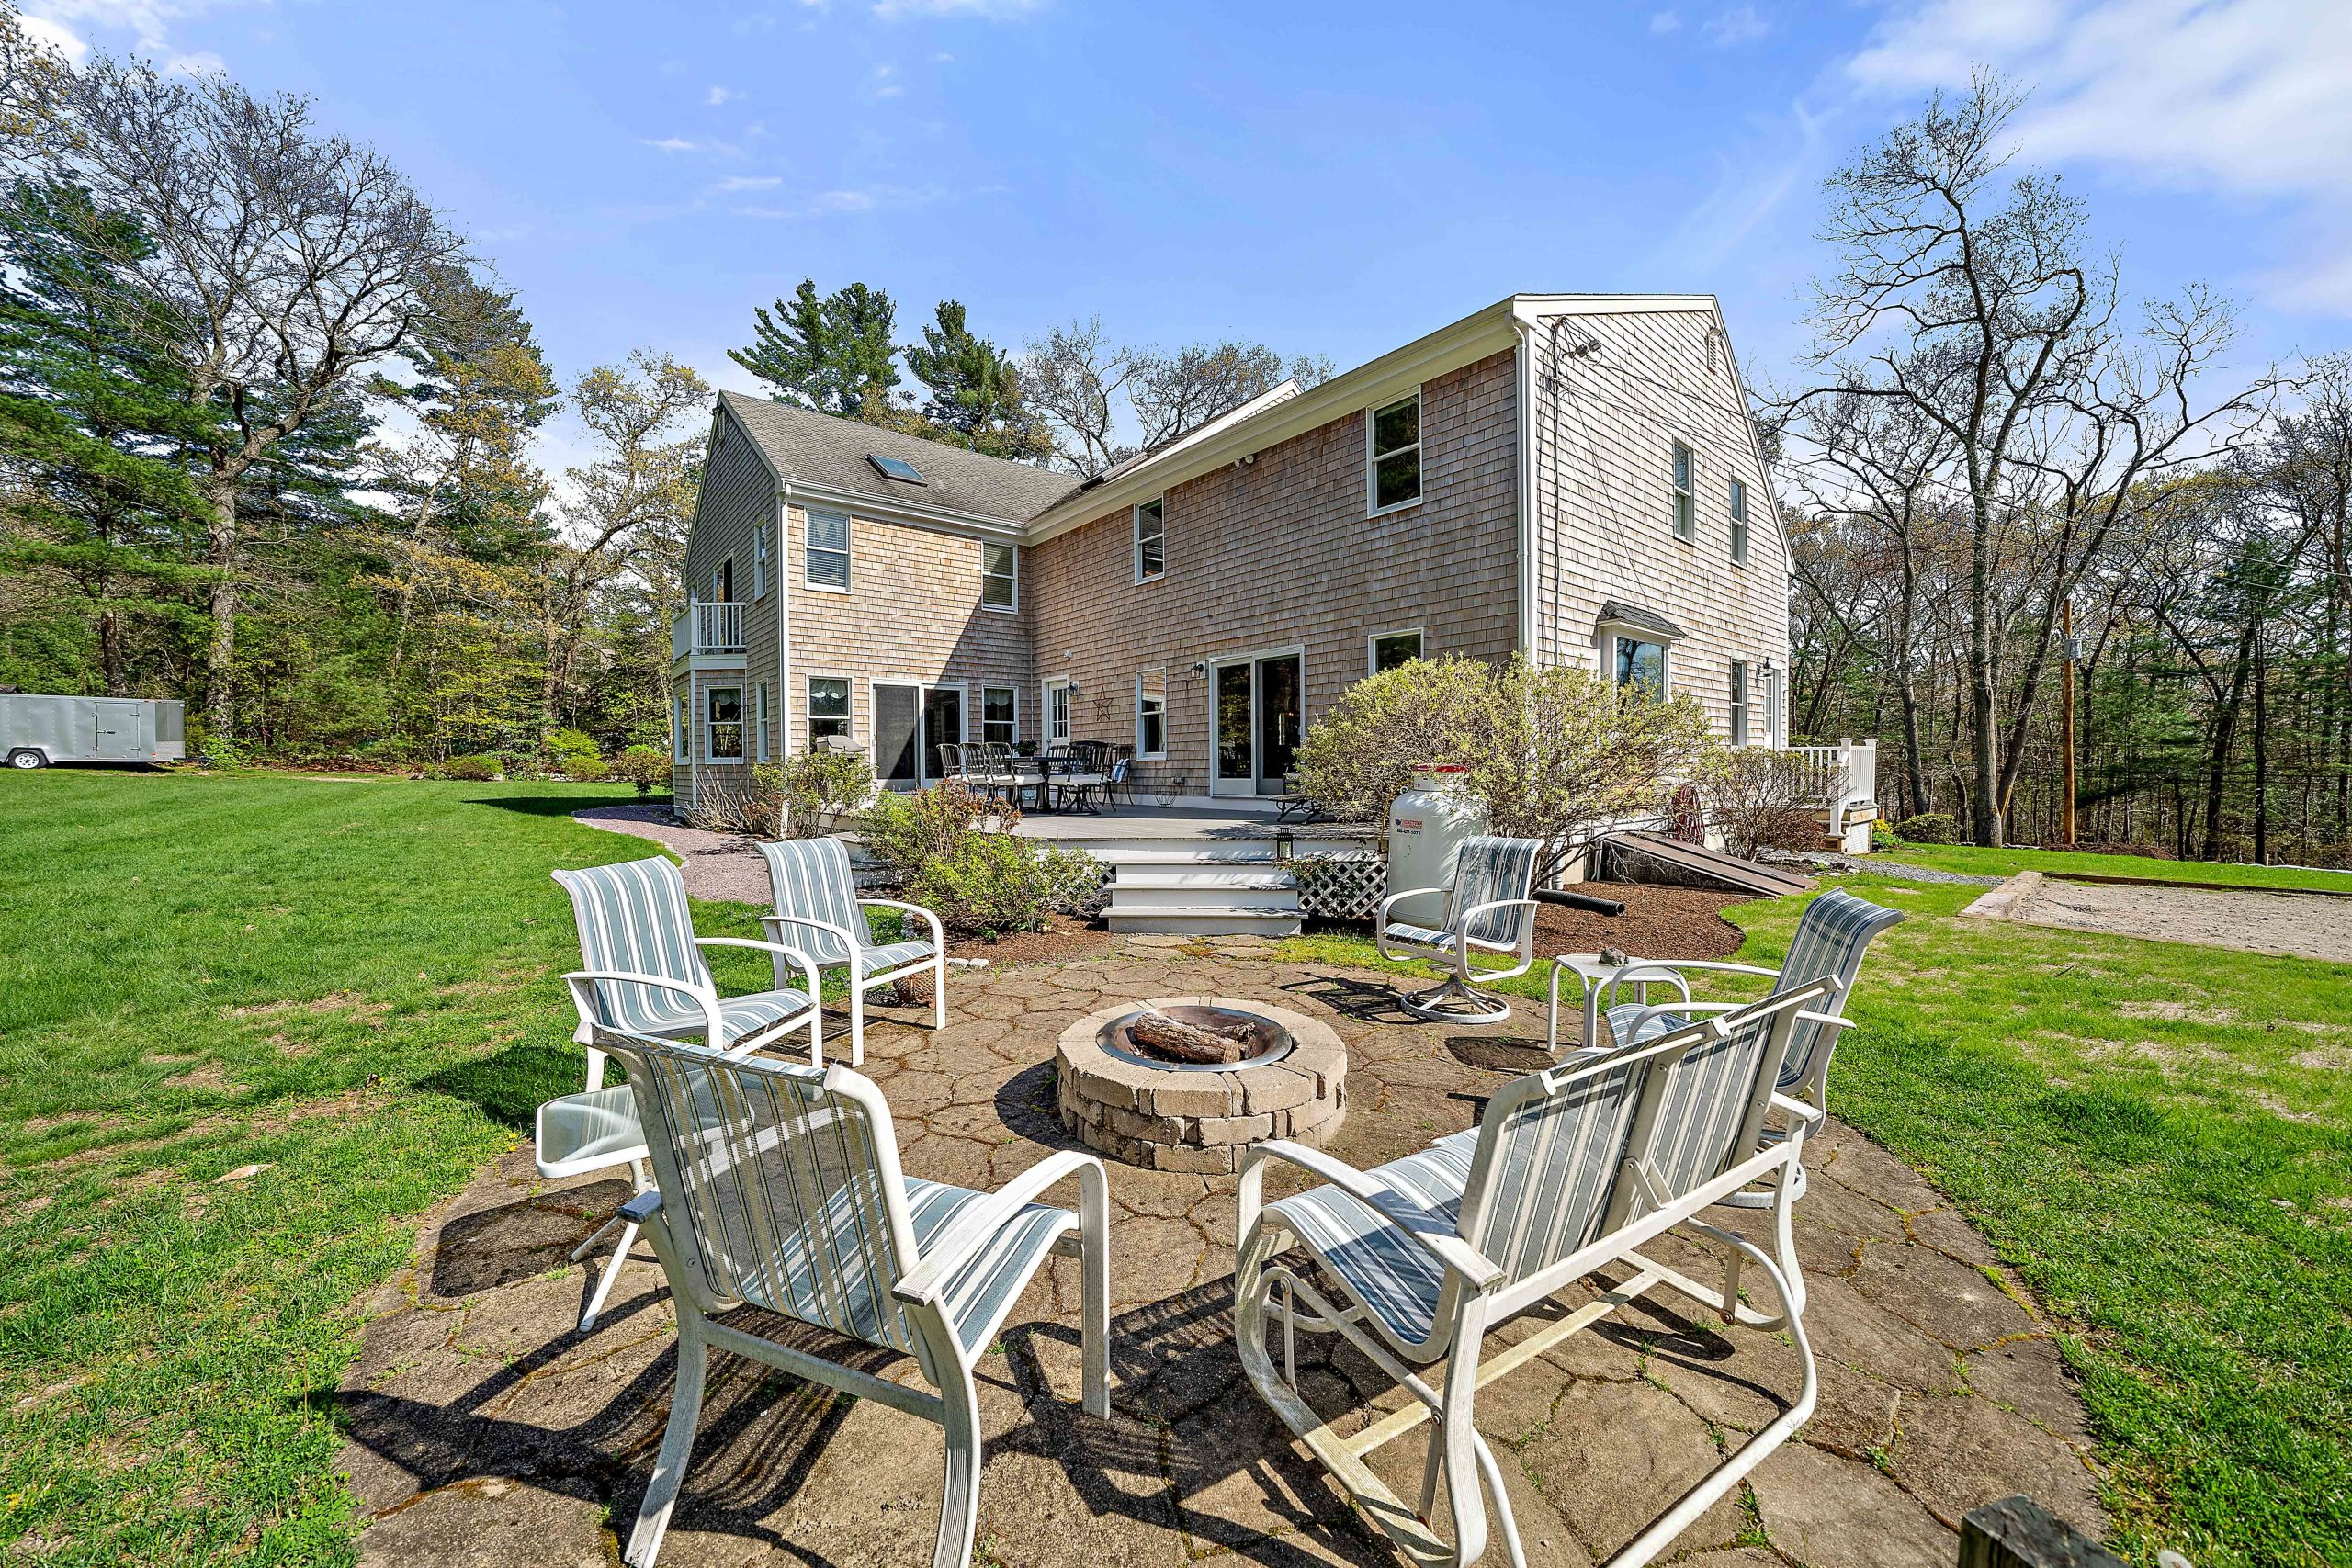 Stunning outdoor area at 92 Neal Gate St. Scituate, Ma. 02066